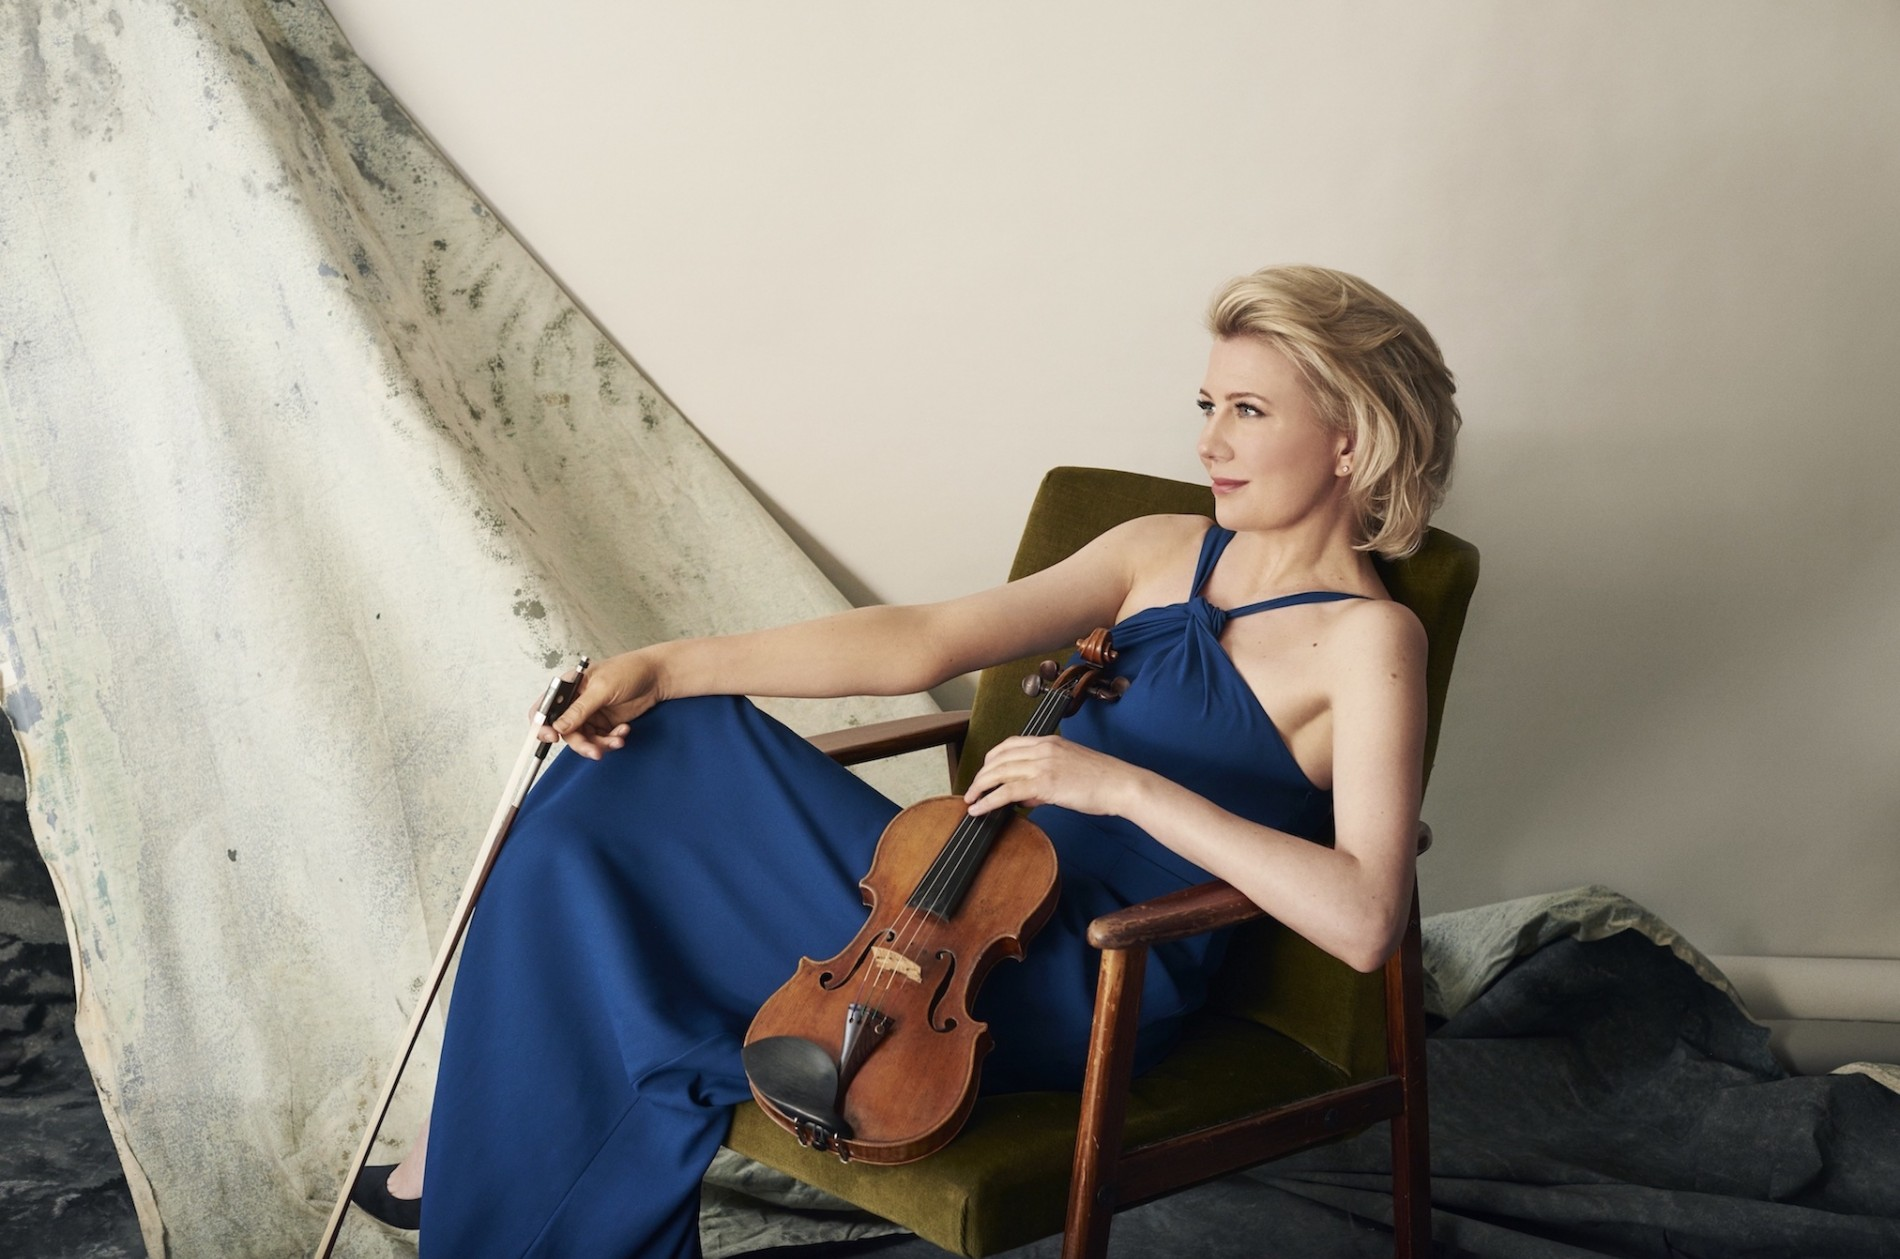 Elina Vähälä seated in a chair and holding a violin